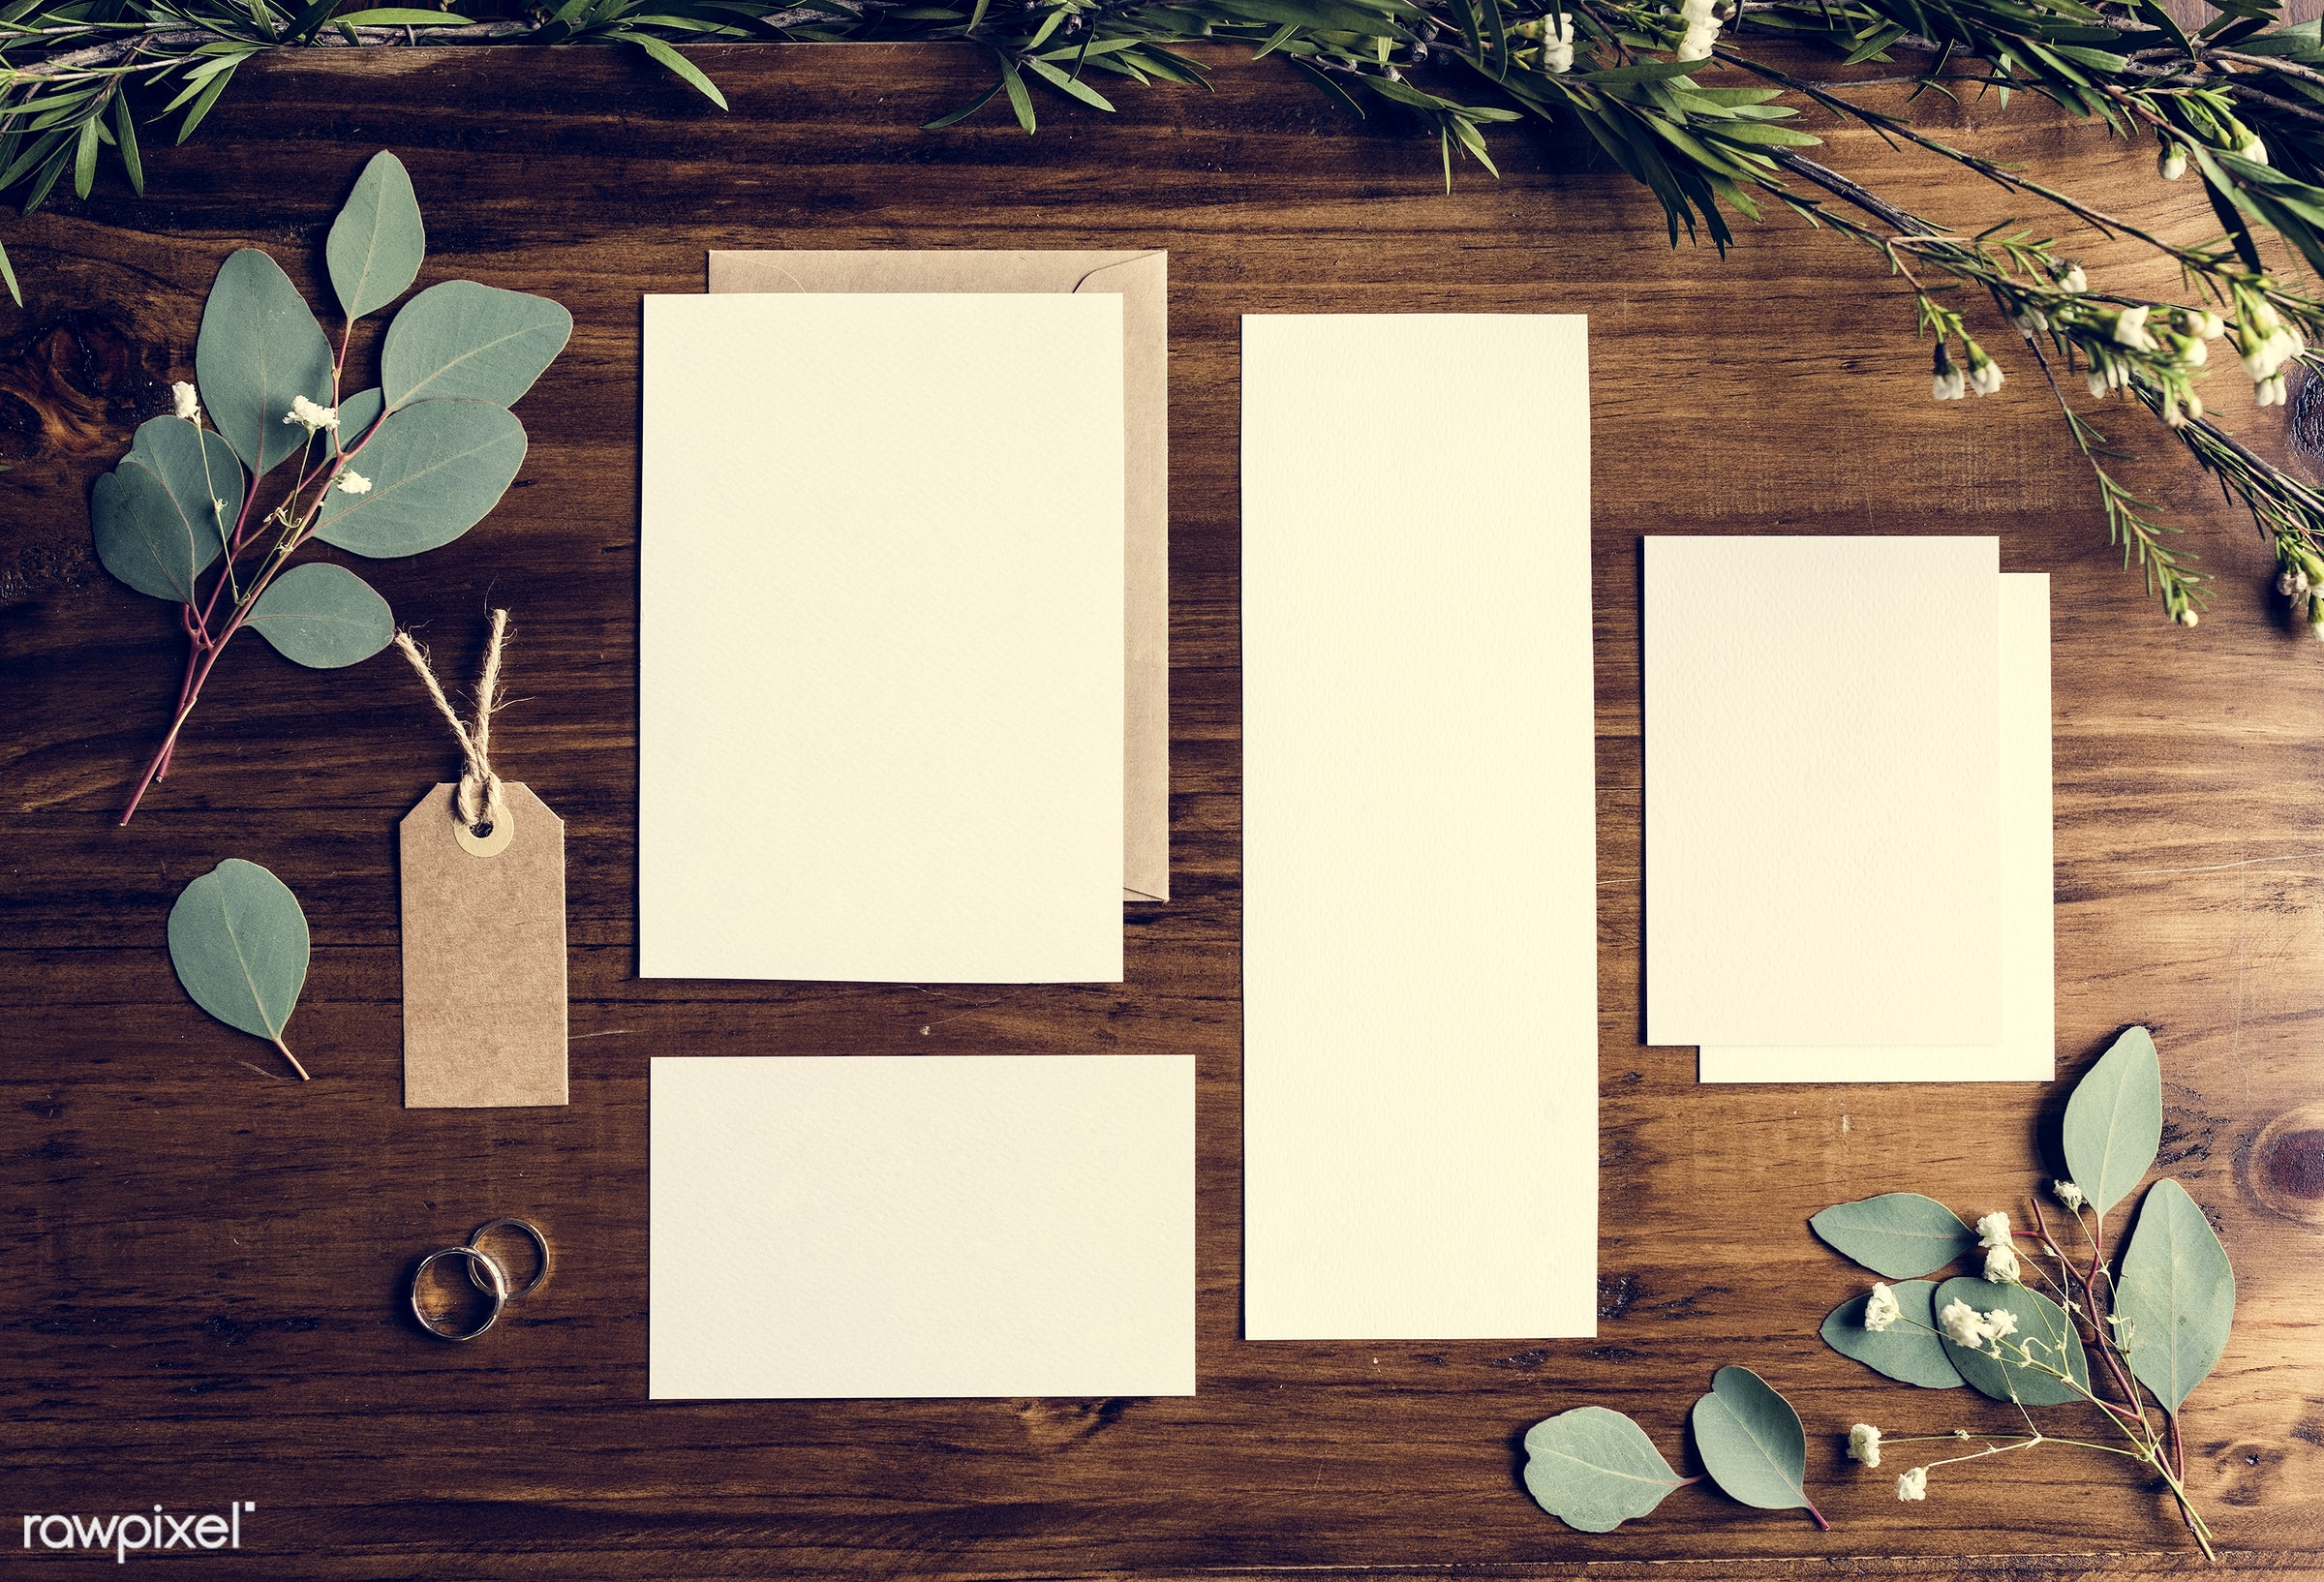 white papers, plant, nobody, copy space, tag, paper, show, mockup, desk, leaves, nature, communicate, empty, card, rings,...